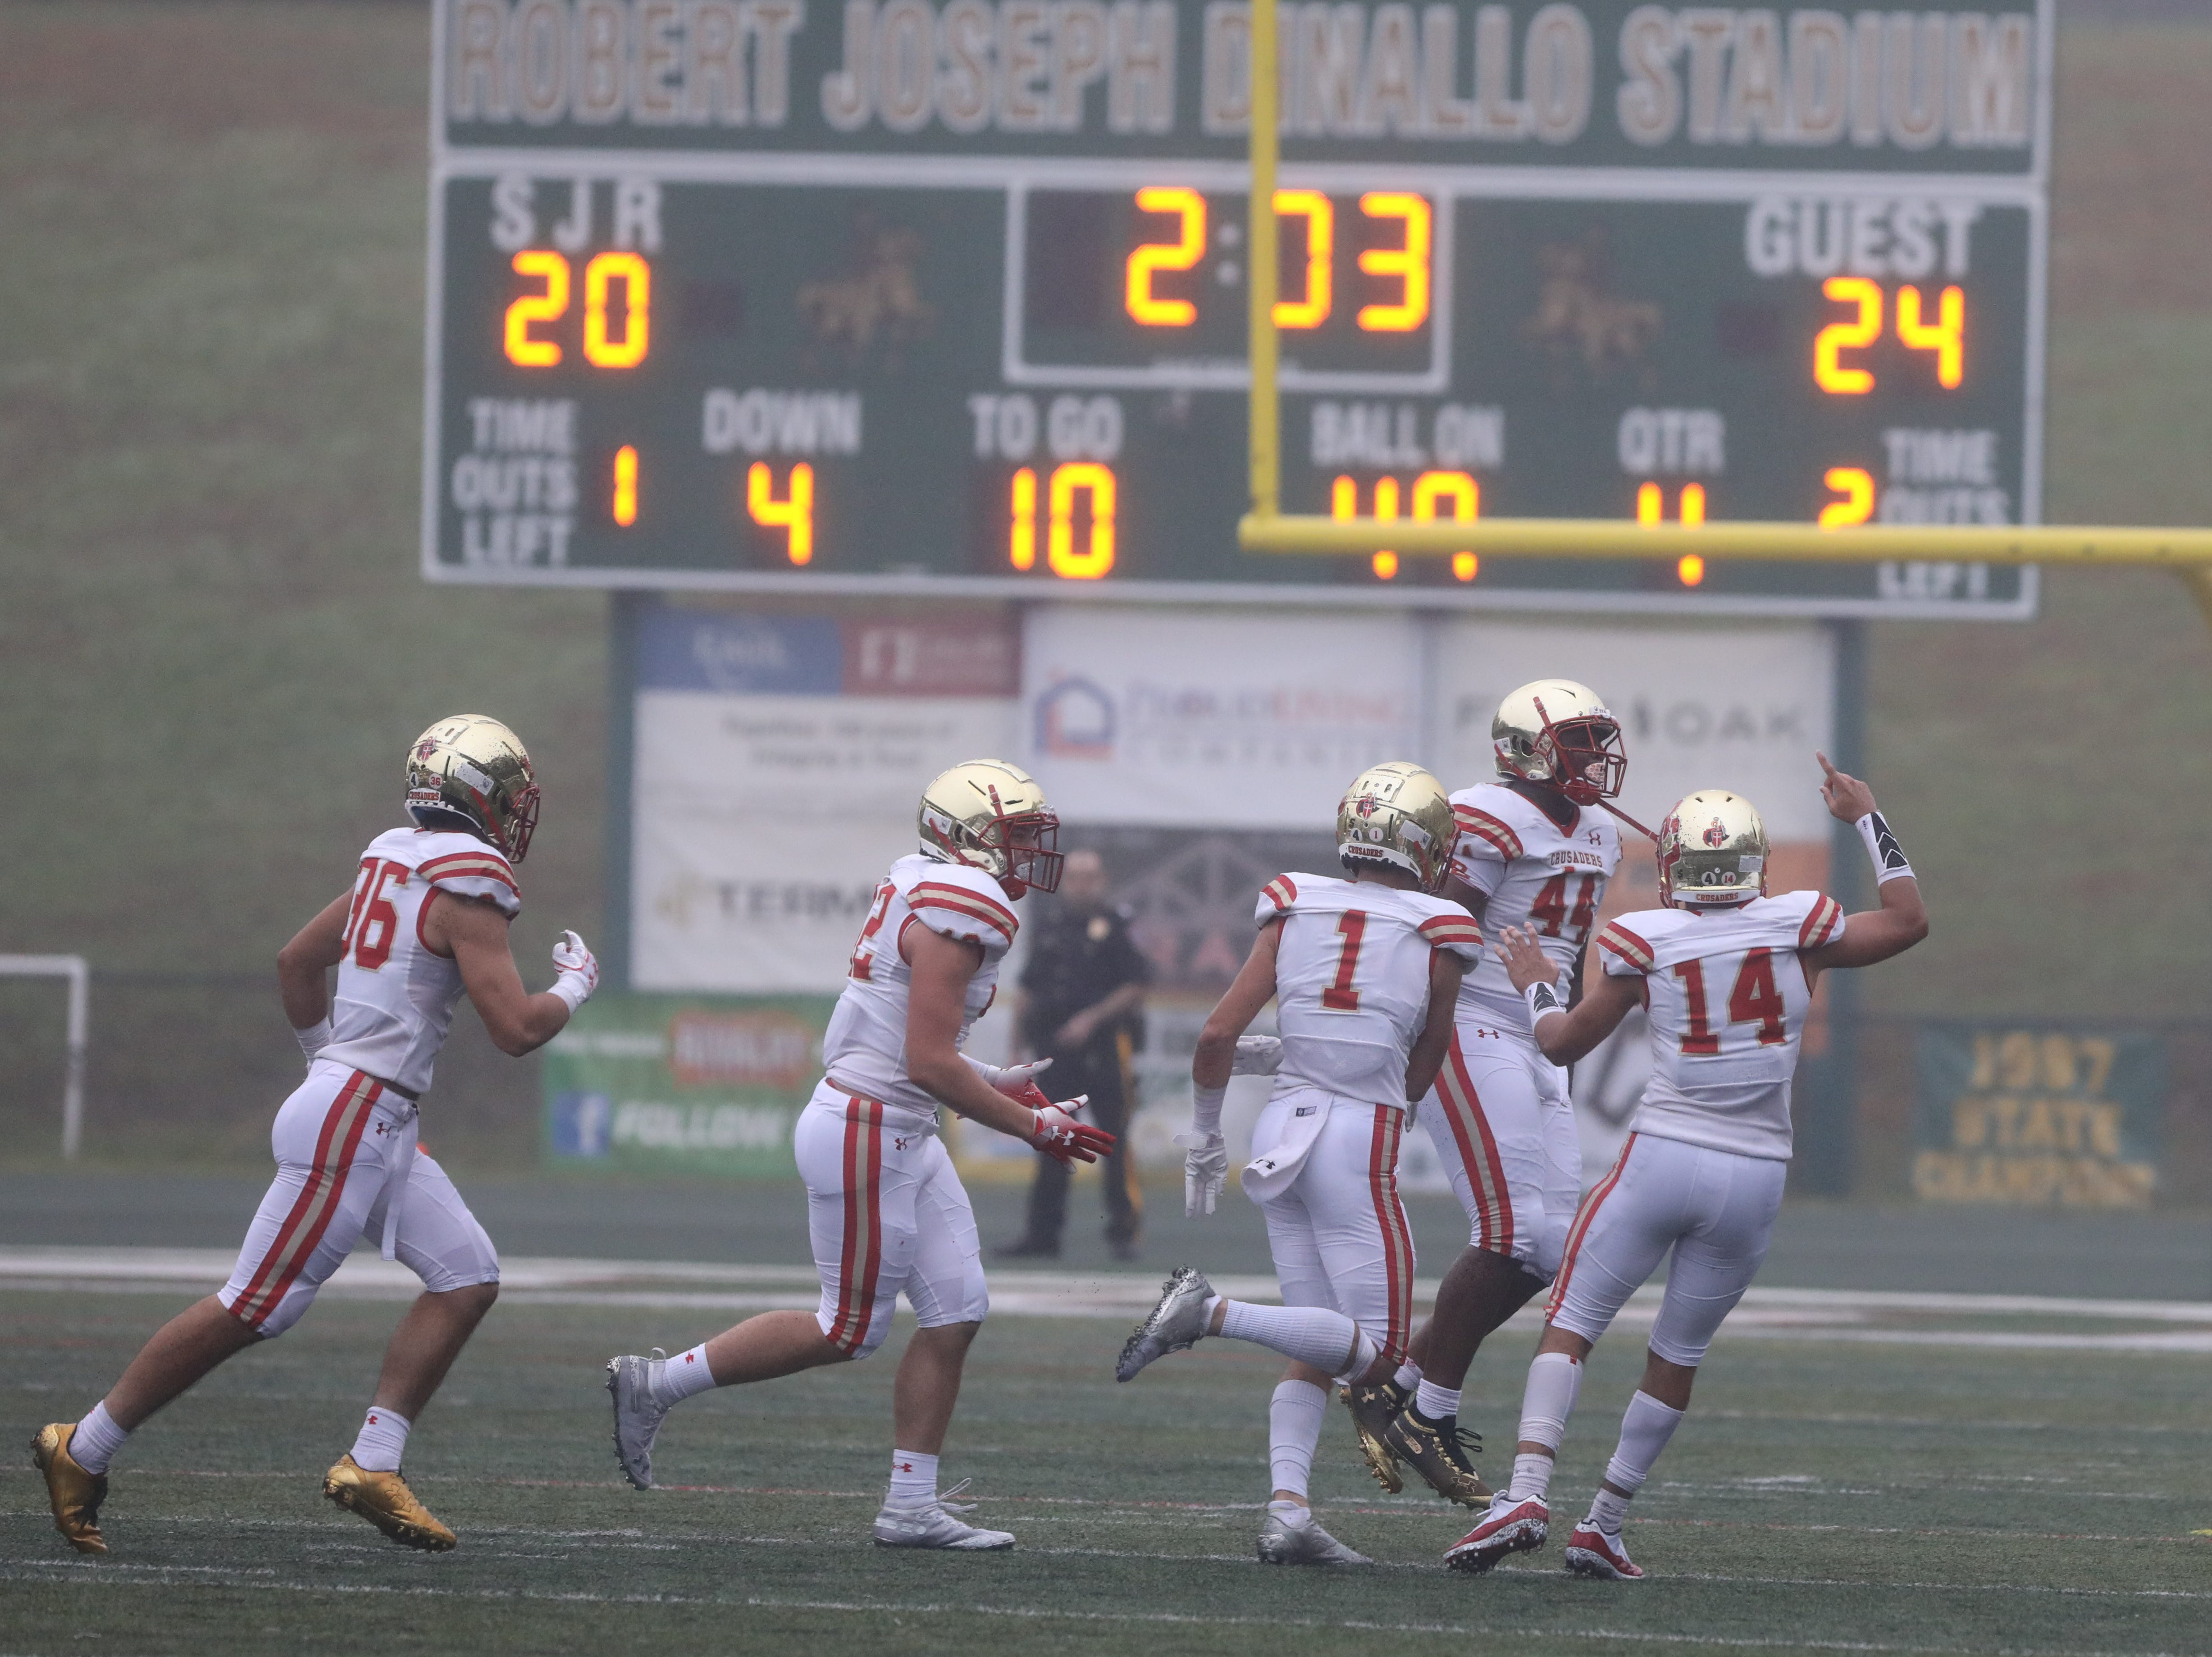 The Bergen Catholic defense stopped St. Joseph on forth down to ice the game with two minutes left.